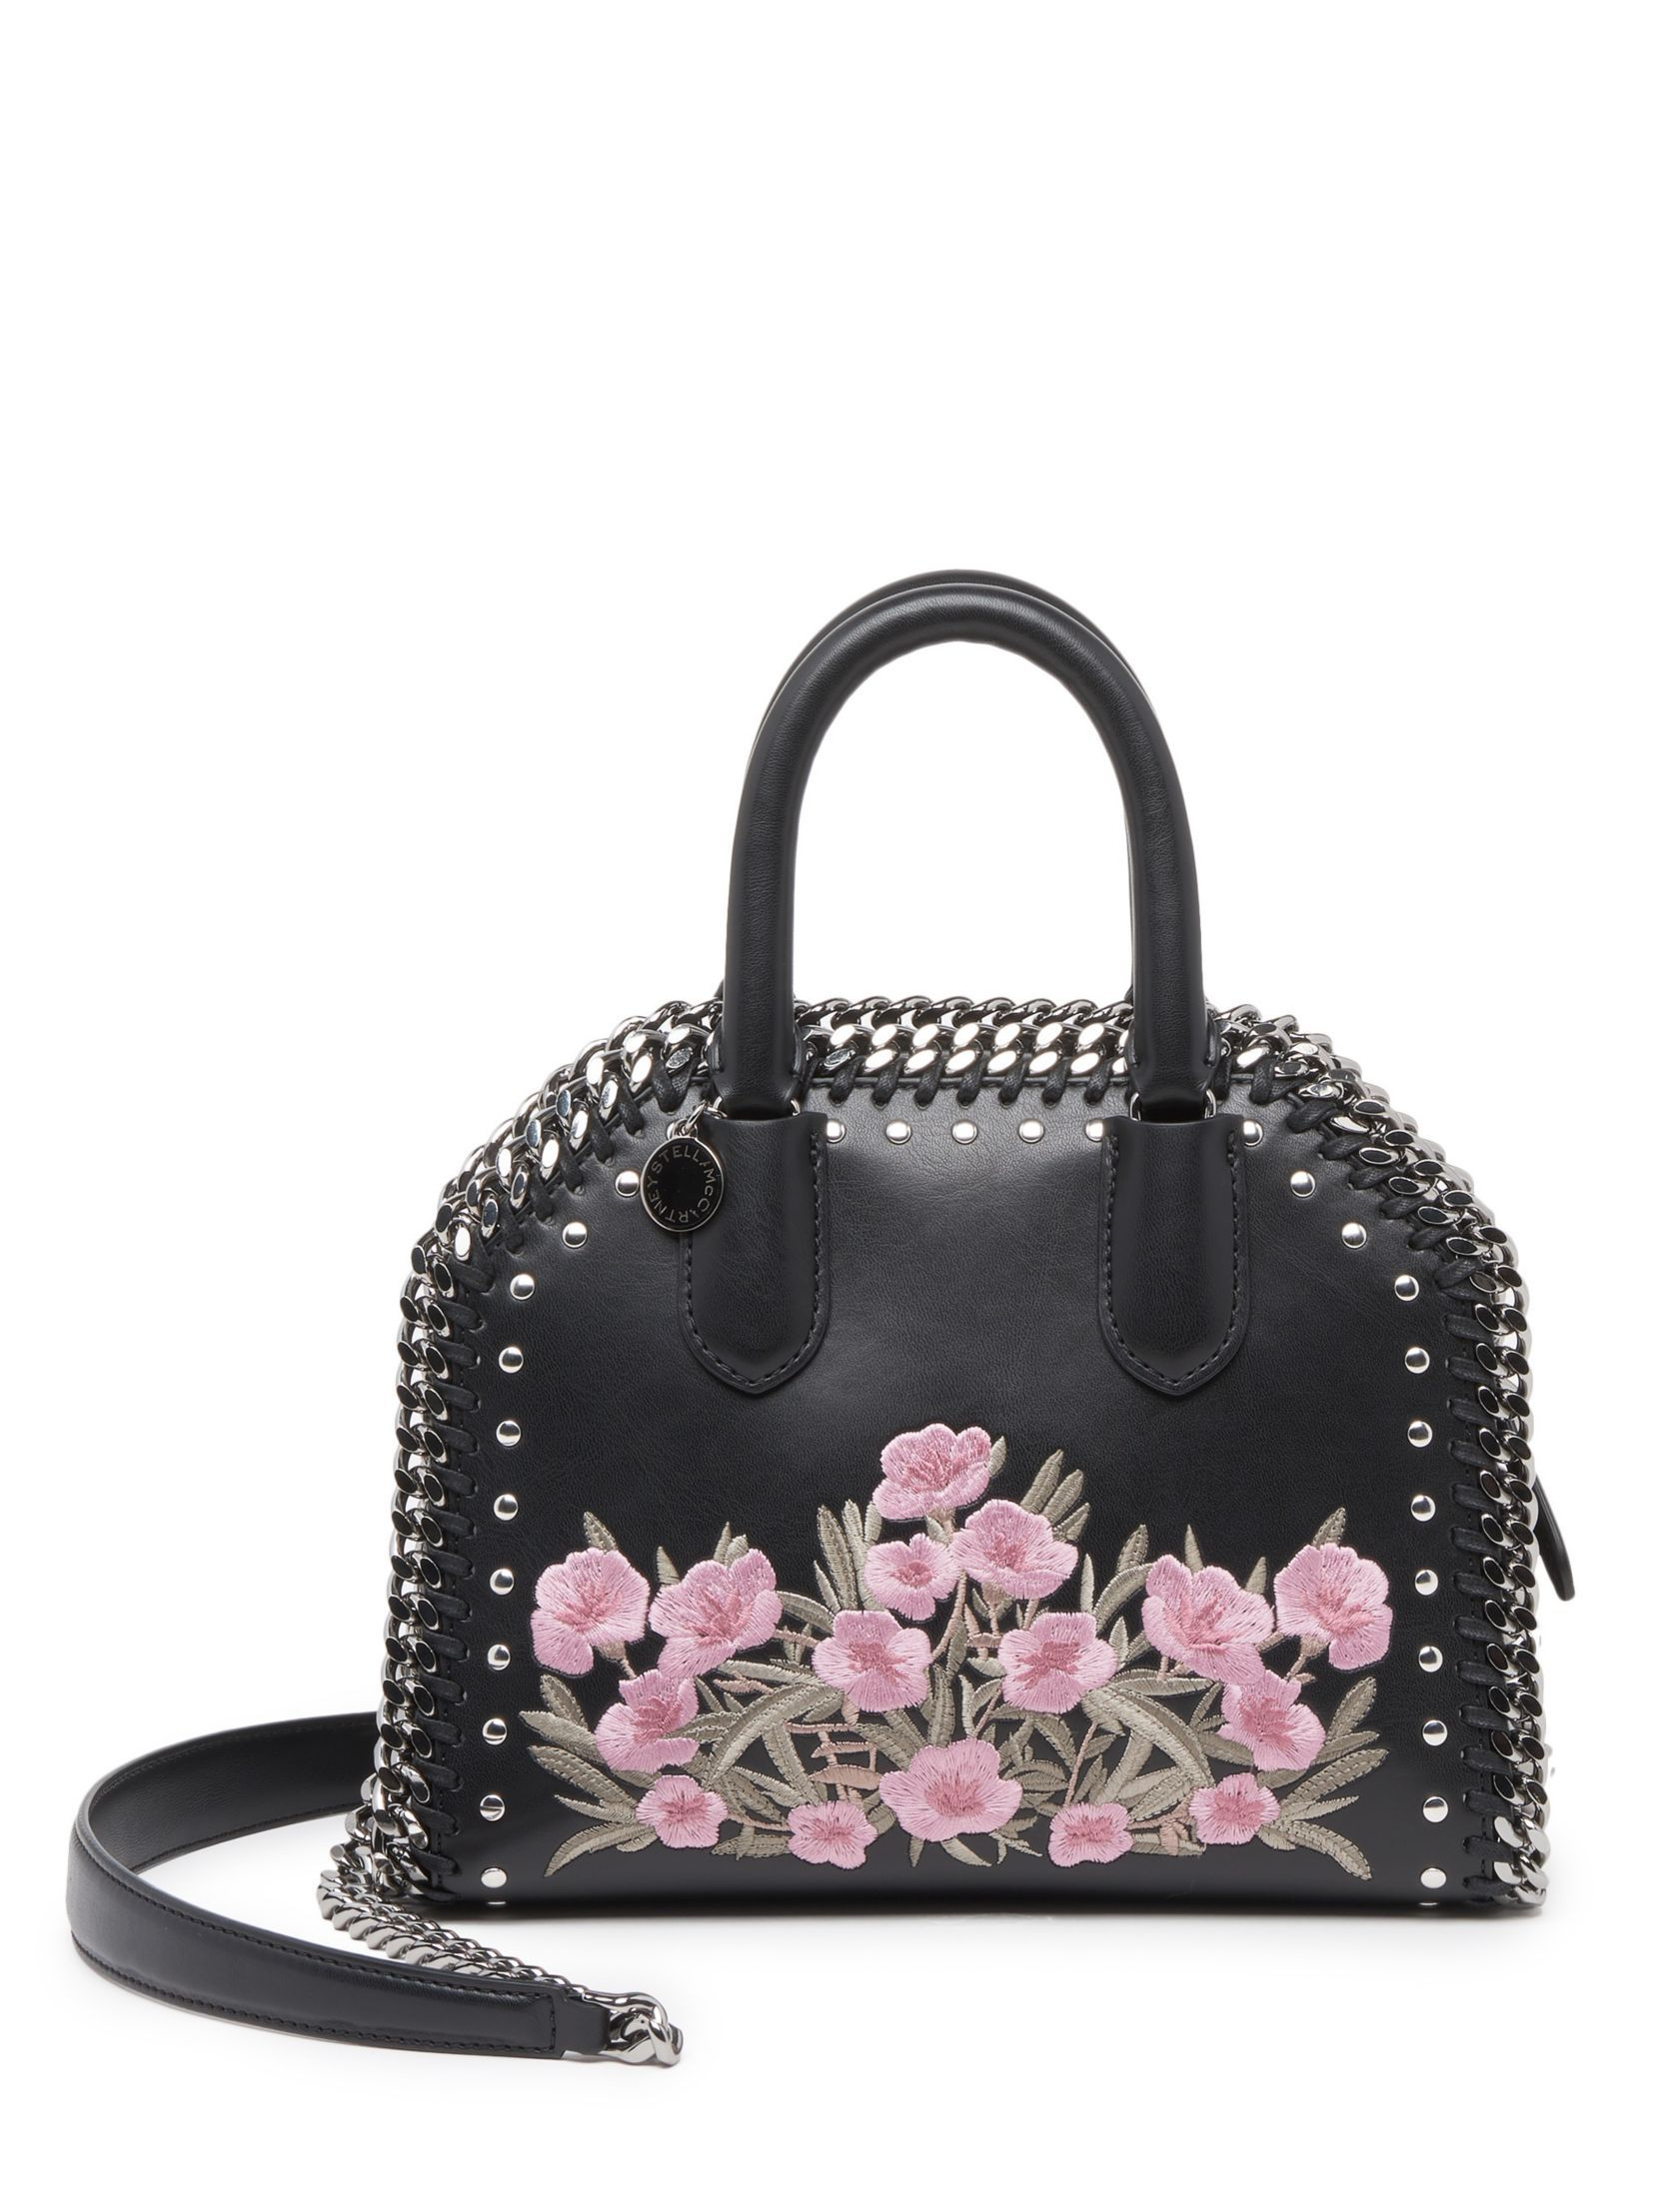 Stella McCartney Falabella Box Embroidered Faux Leather Top-Handle Satchel 87c057d0b61c5